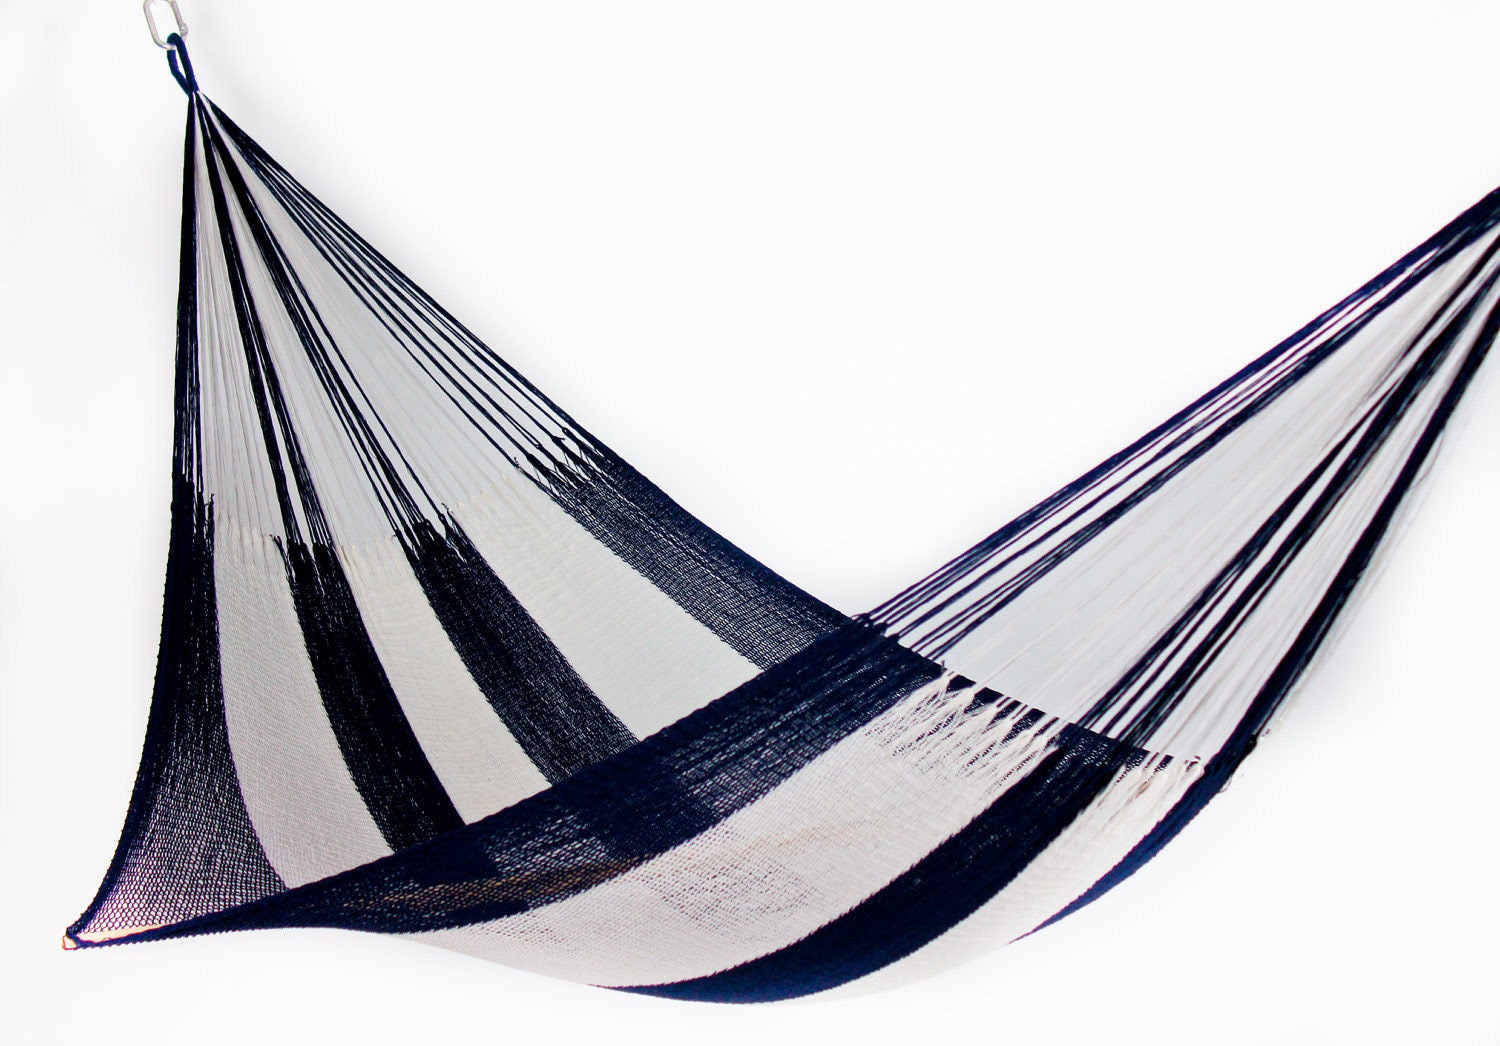 Hammock: Navy Blue & White Stripe (Two Person) by Yellow Leaf with Free Shipping